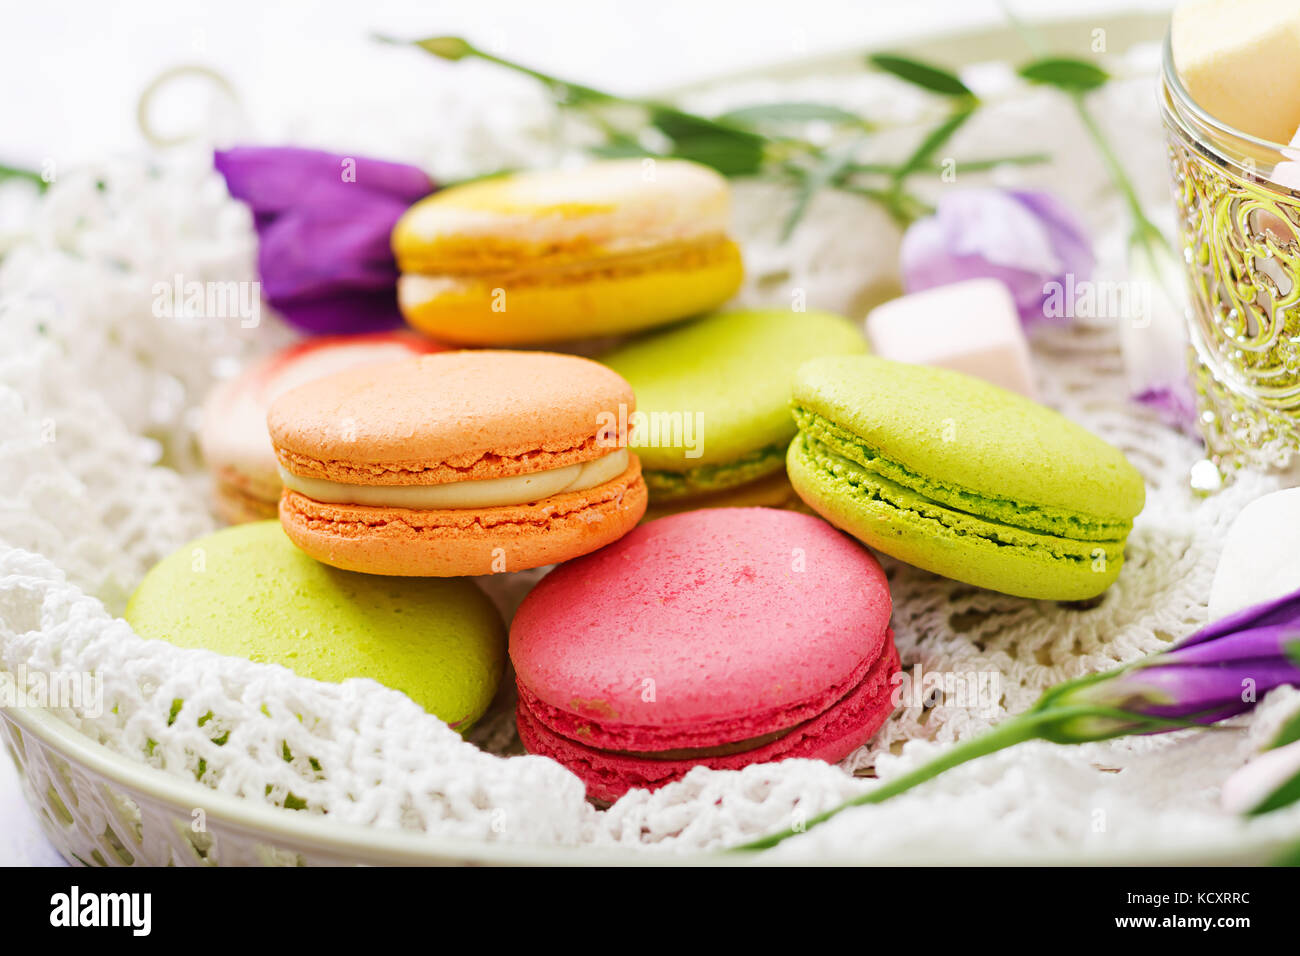 Colorful macaroons and marshmallows on a ligth  background. - Stock Image